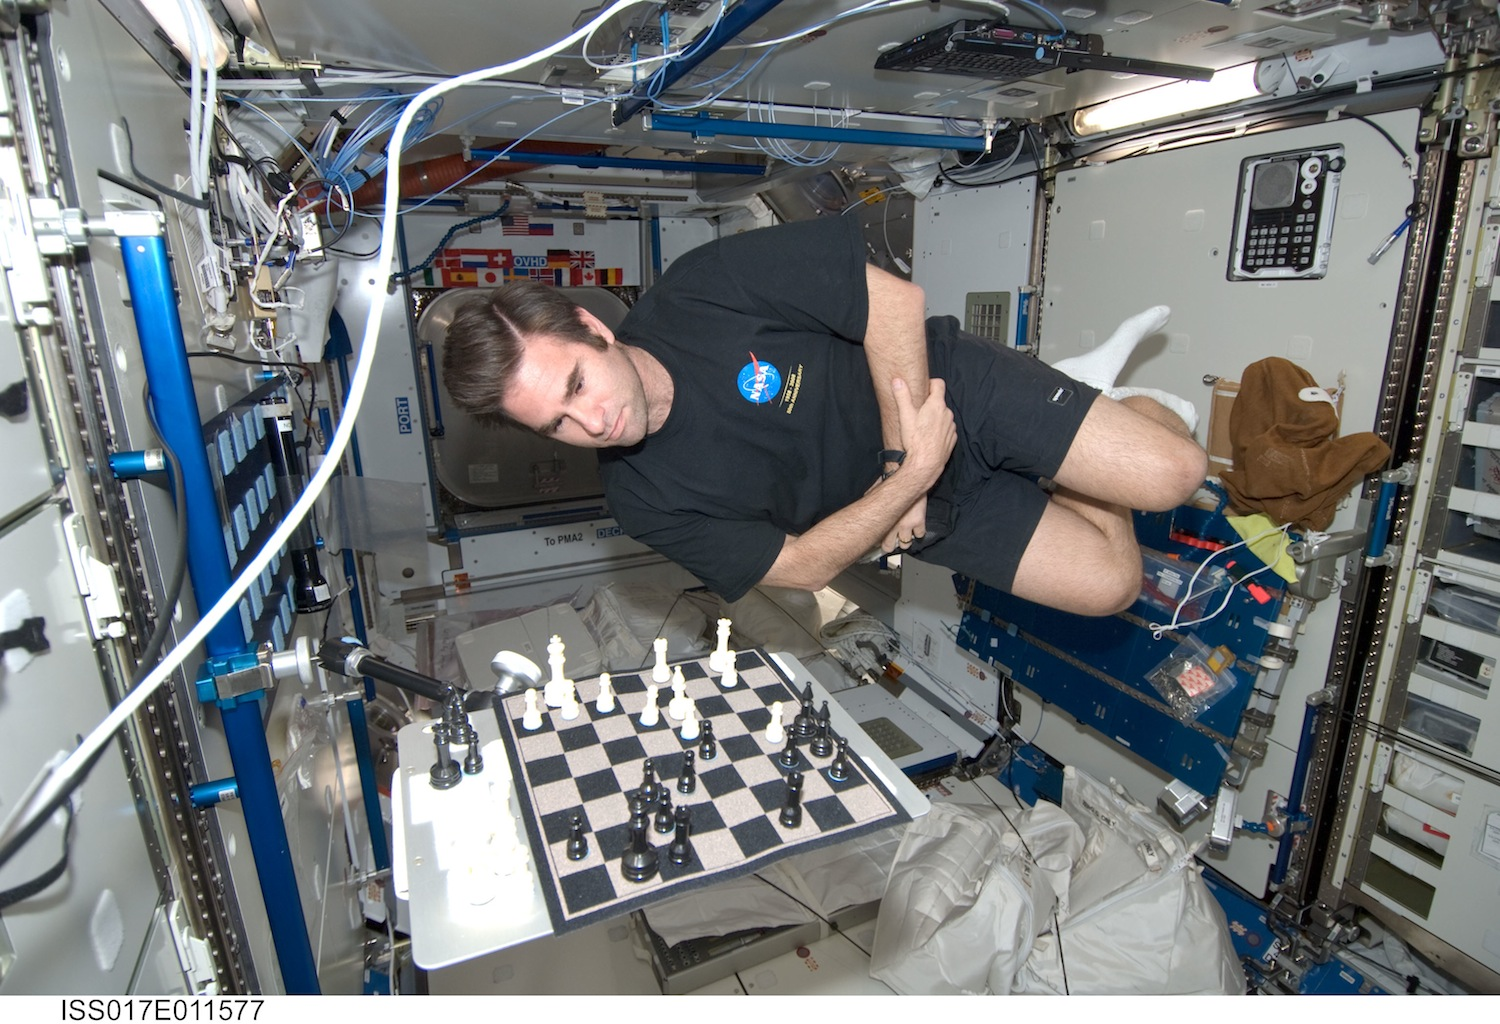 The arm holding Nasa astronaut Greg Chamitoff's chess board attaches to the blue handrail using a Handrail Clamp Assembly. That keeps the chessboard in place, but the chess player...?  Source:  Nasa